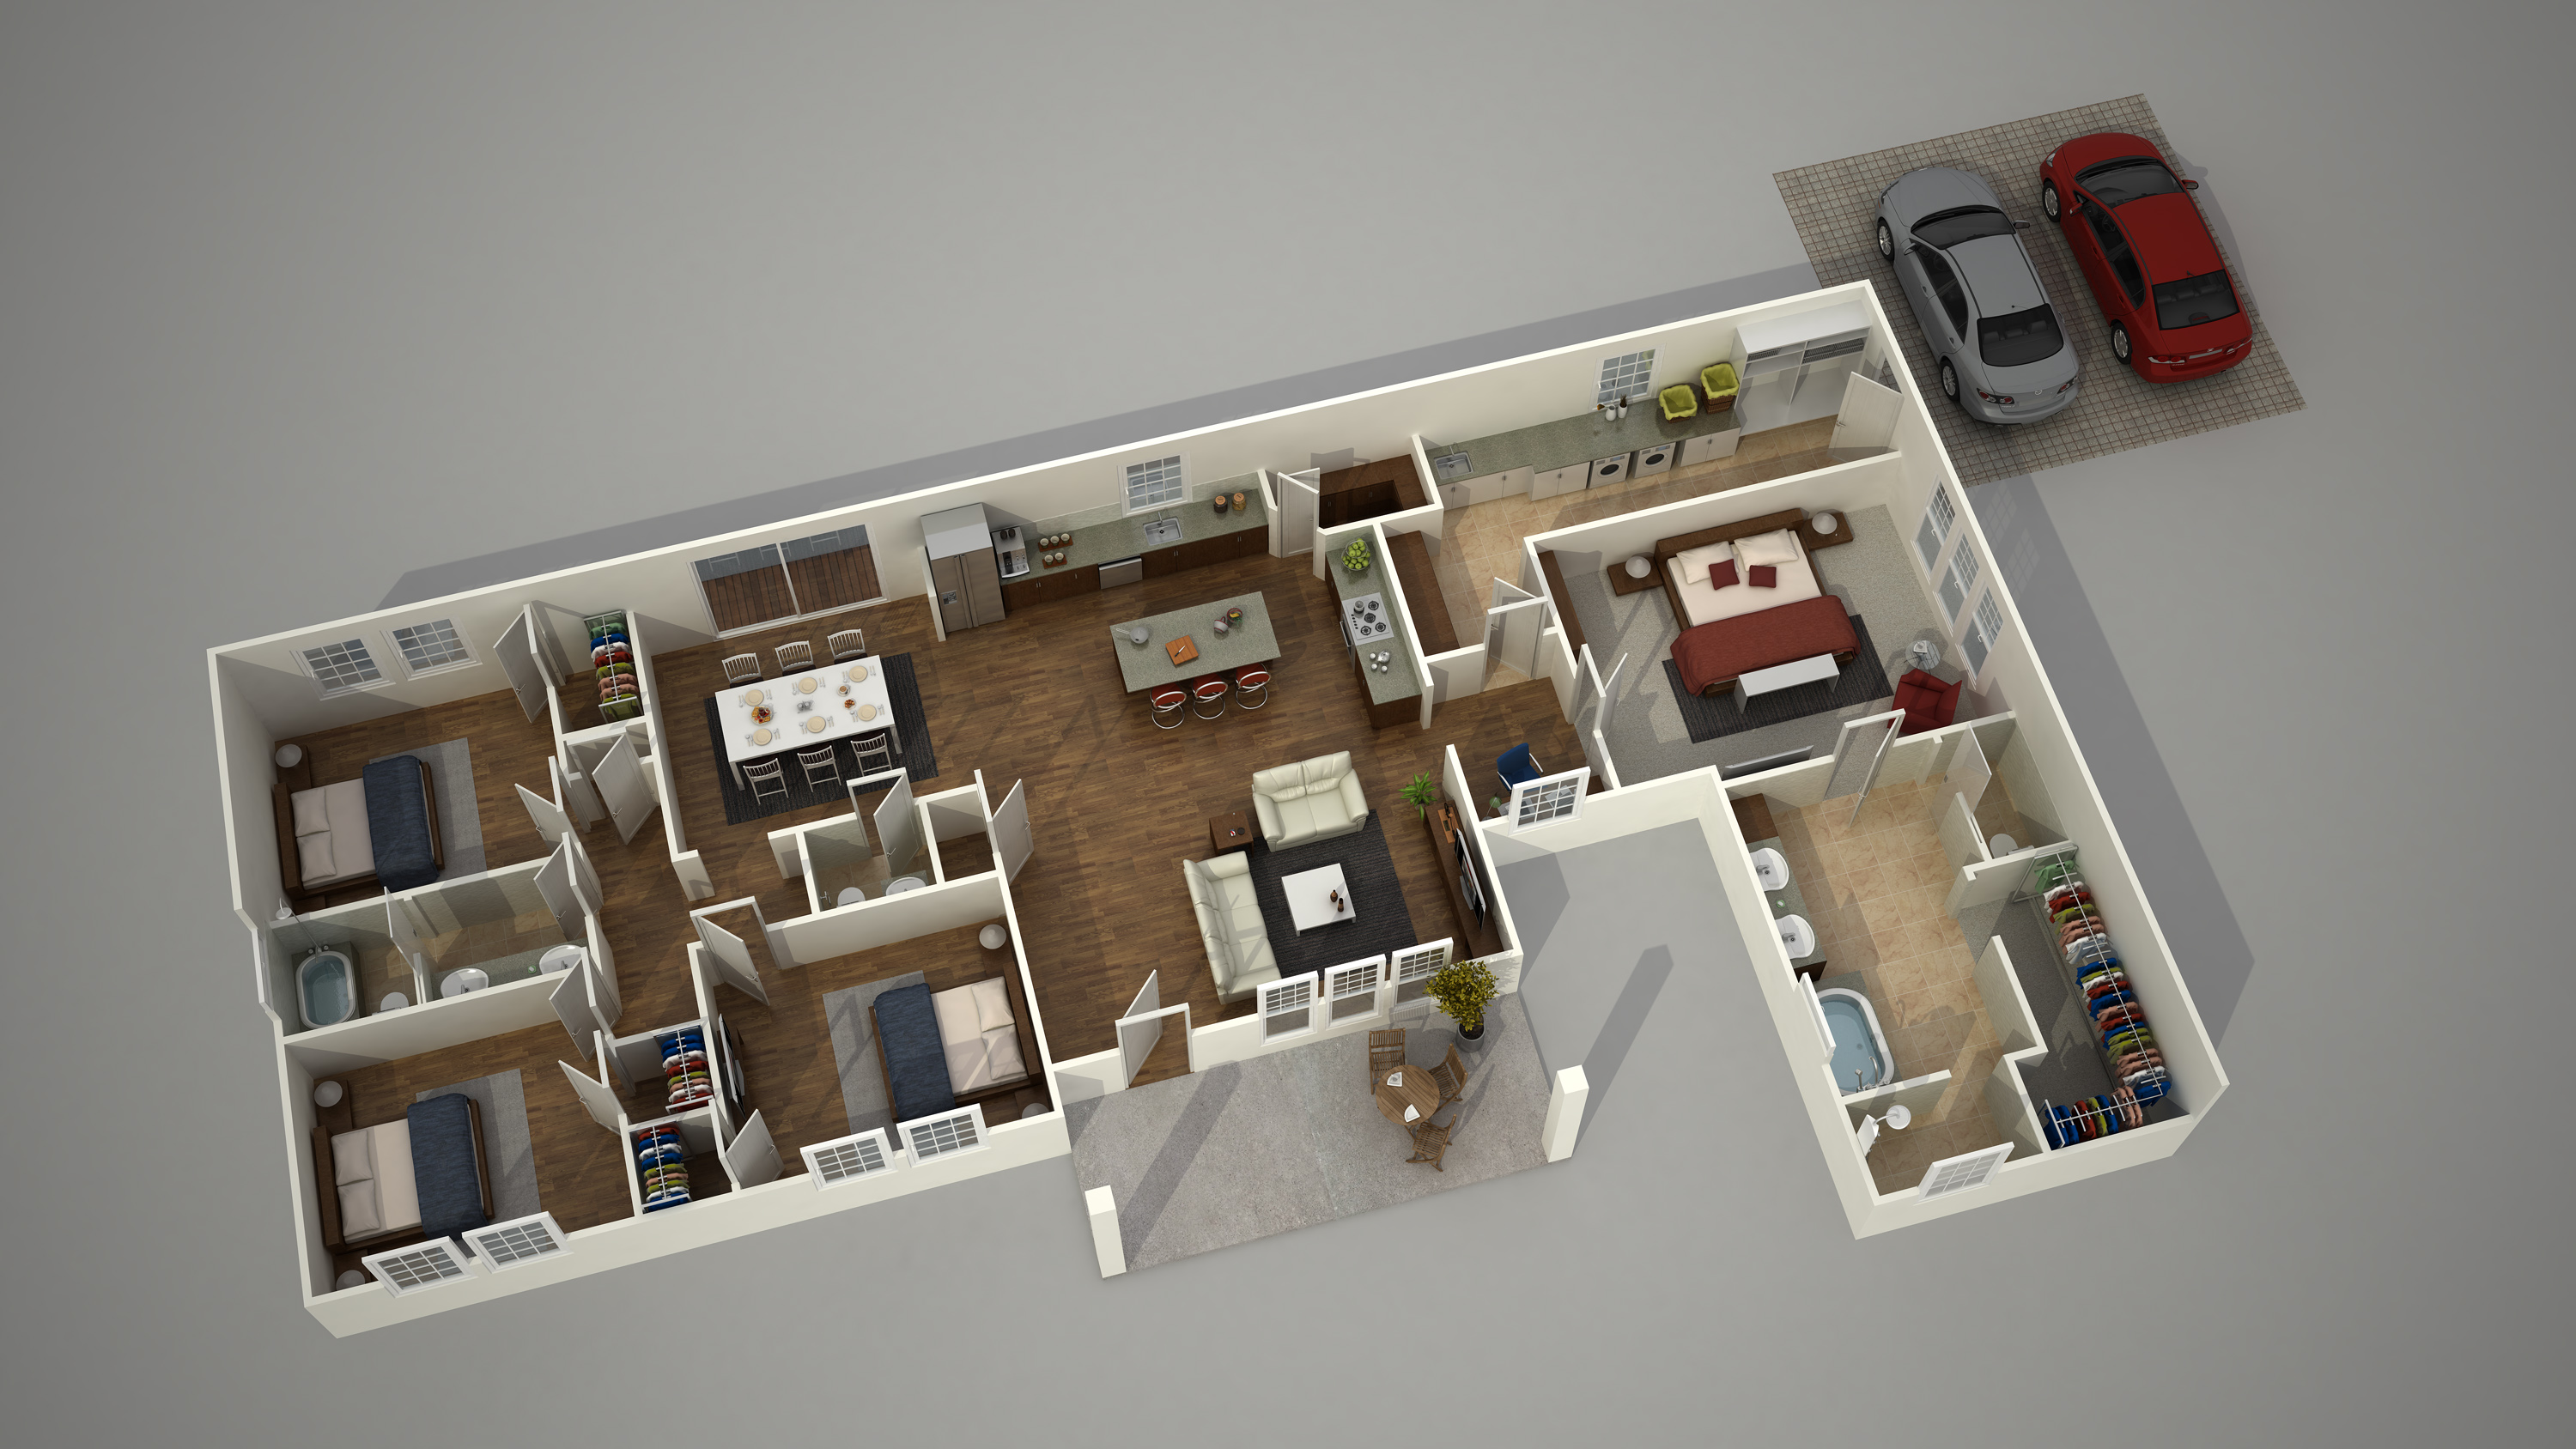 4 Unit Apartment Building Plans How To Create A 3d Architecture Floor Plan Rendering